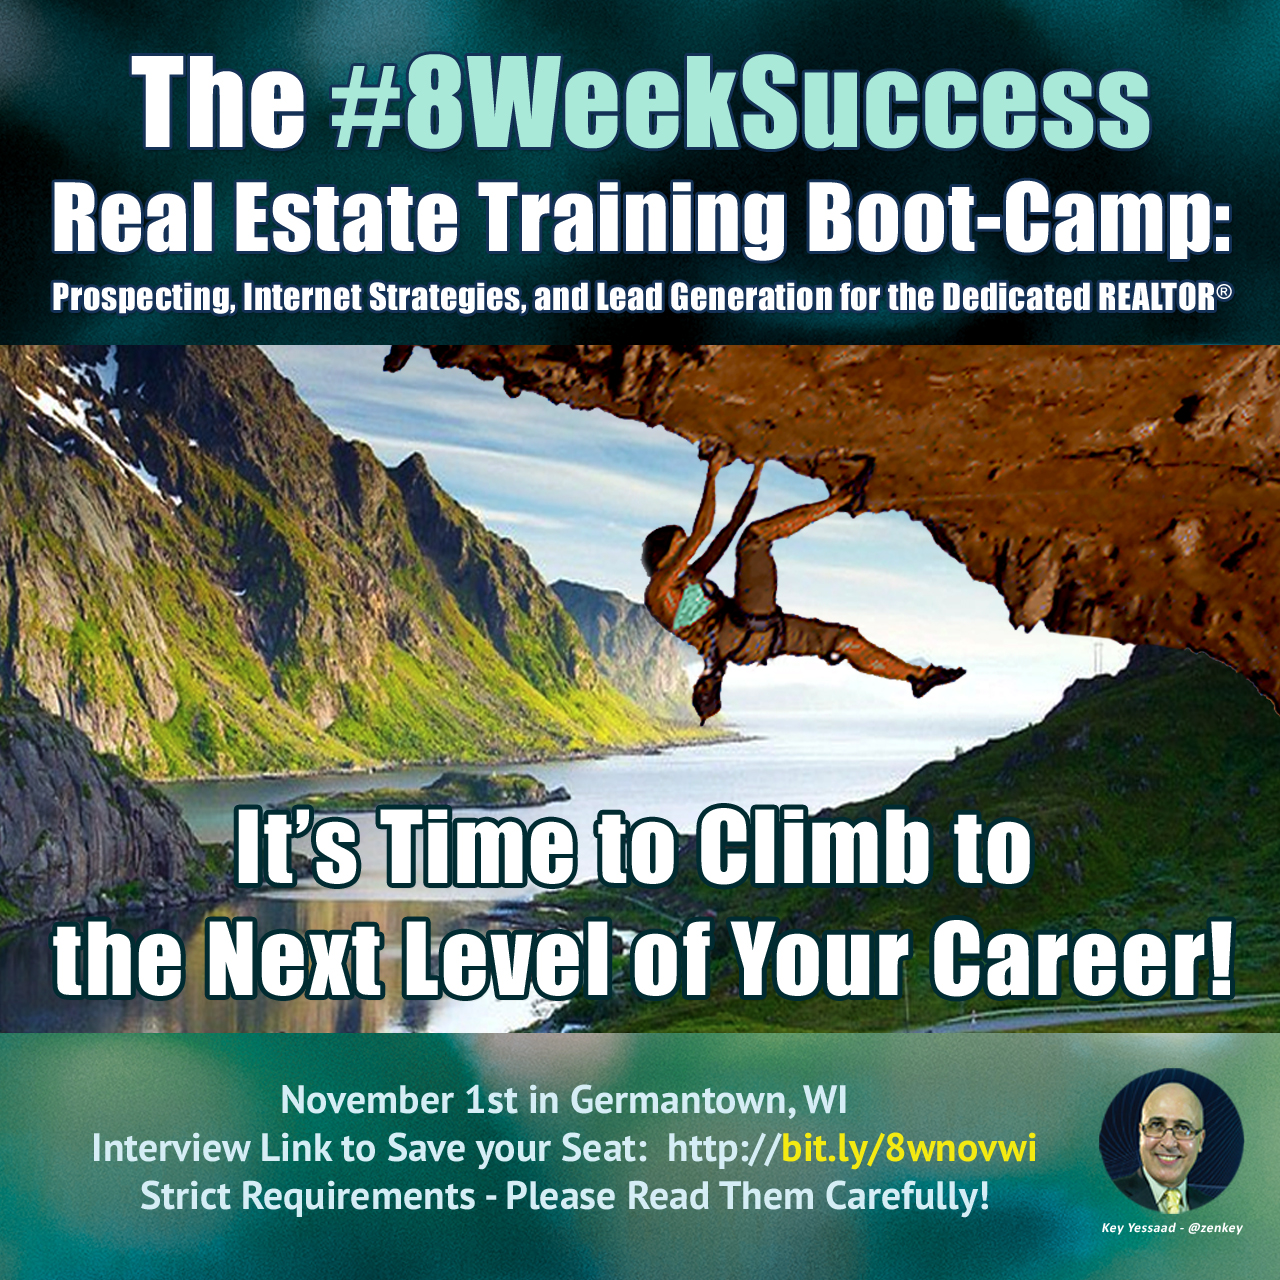 #8WeekSuccess - Key's Real Estate Boot-Camp is coming to Wisconsin Nov 1st...